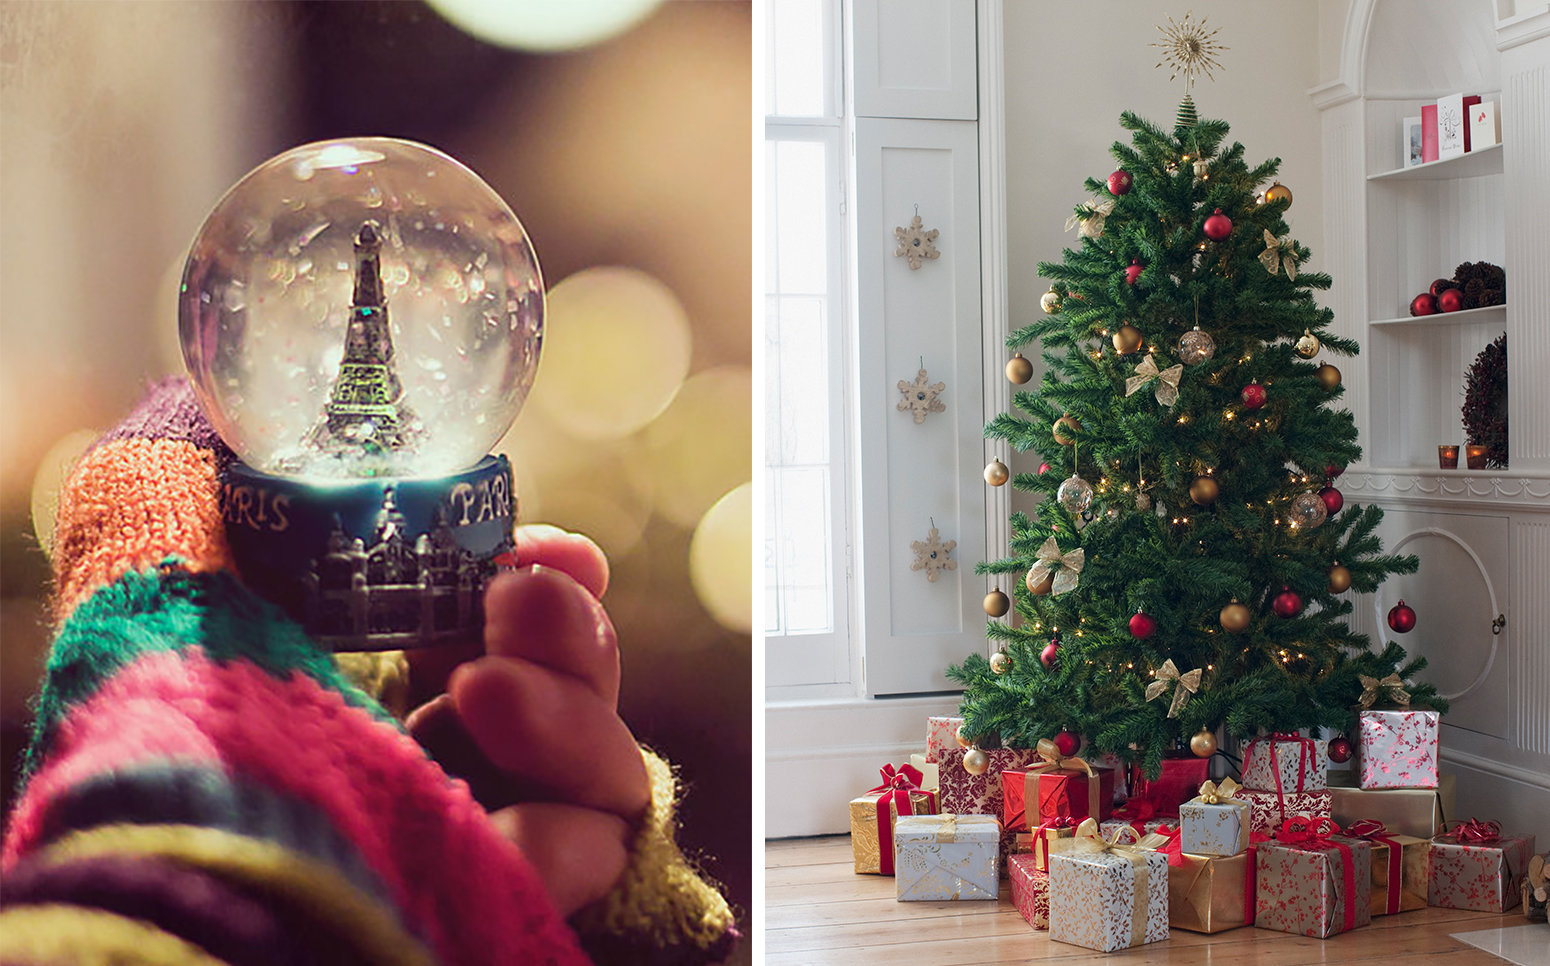 A Snow Globe And Christmas Tree